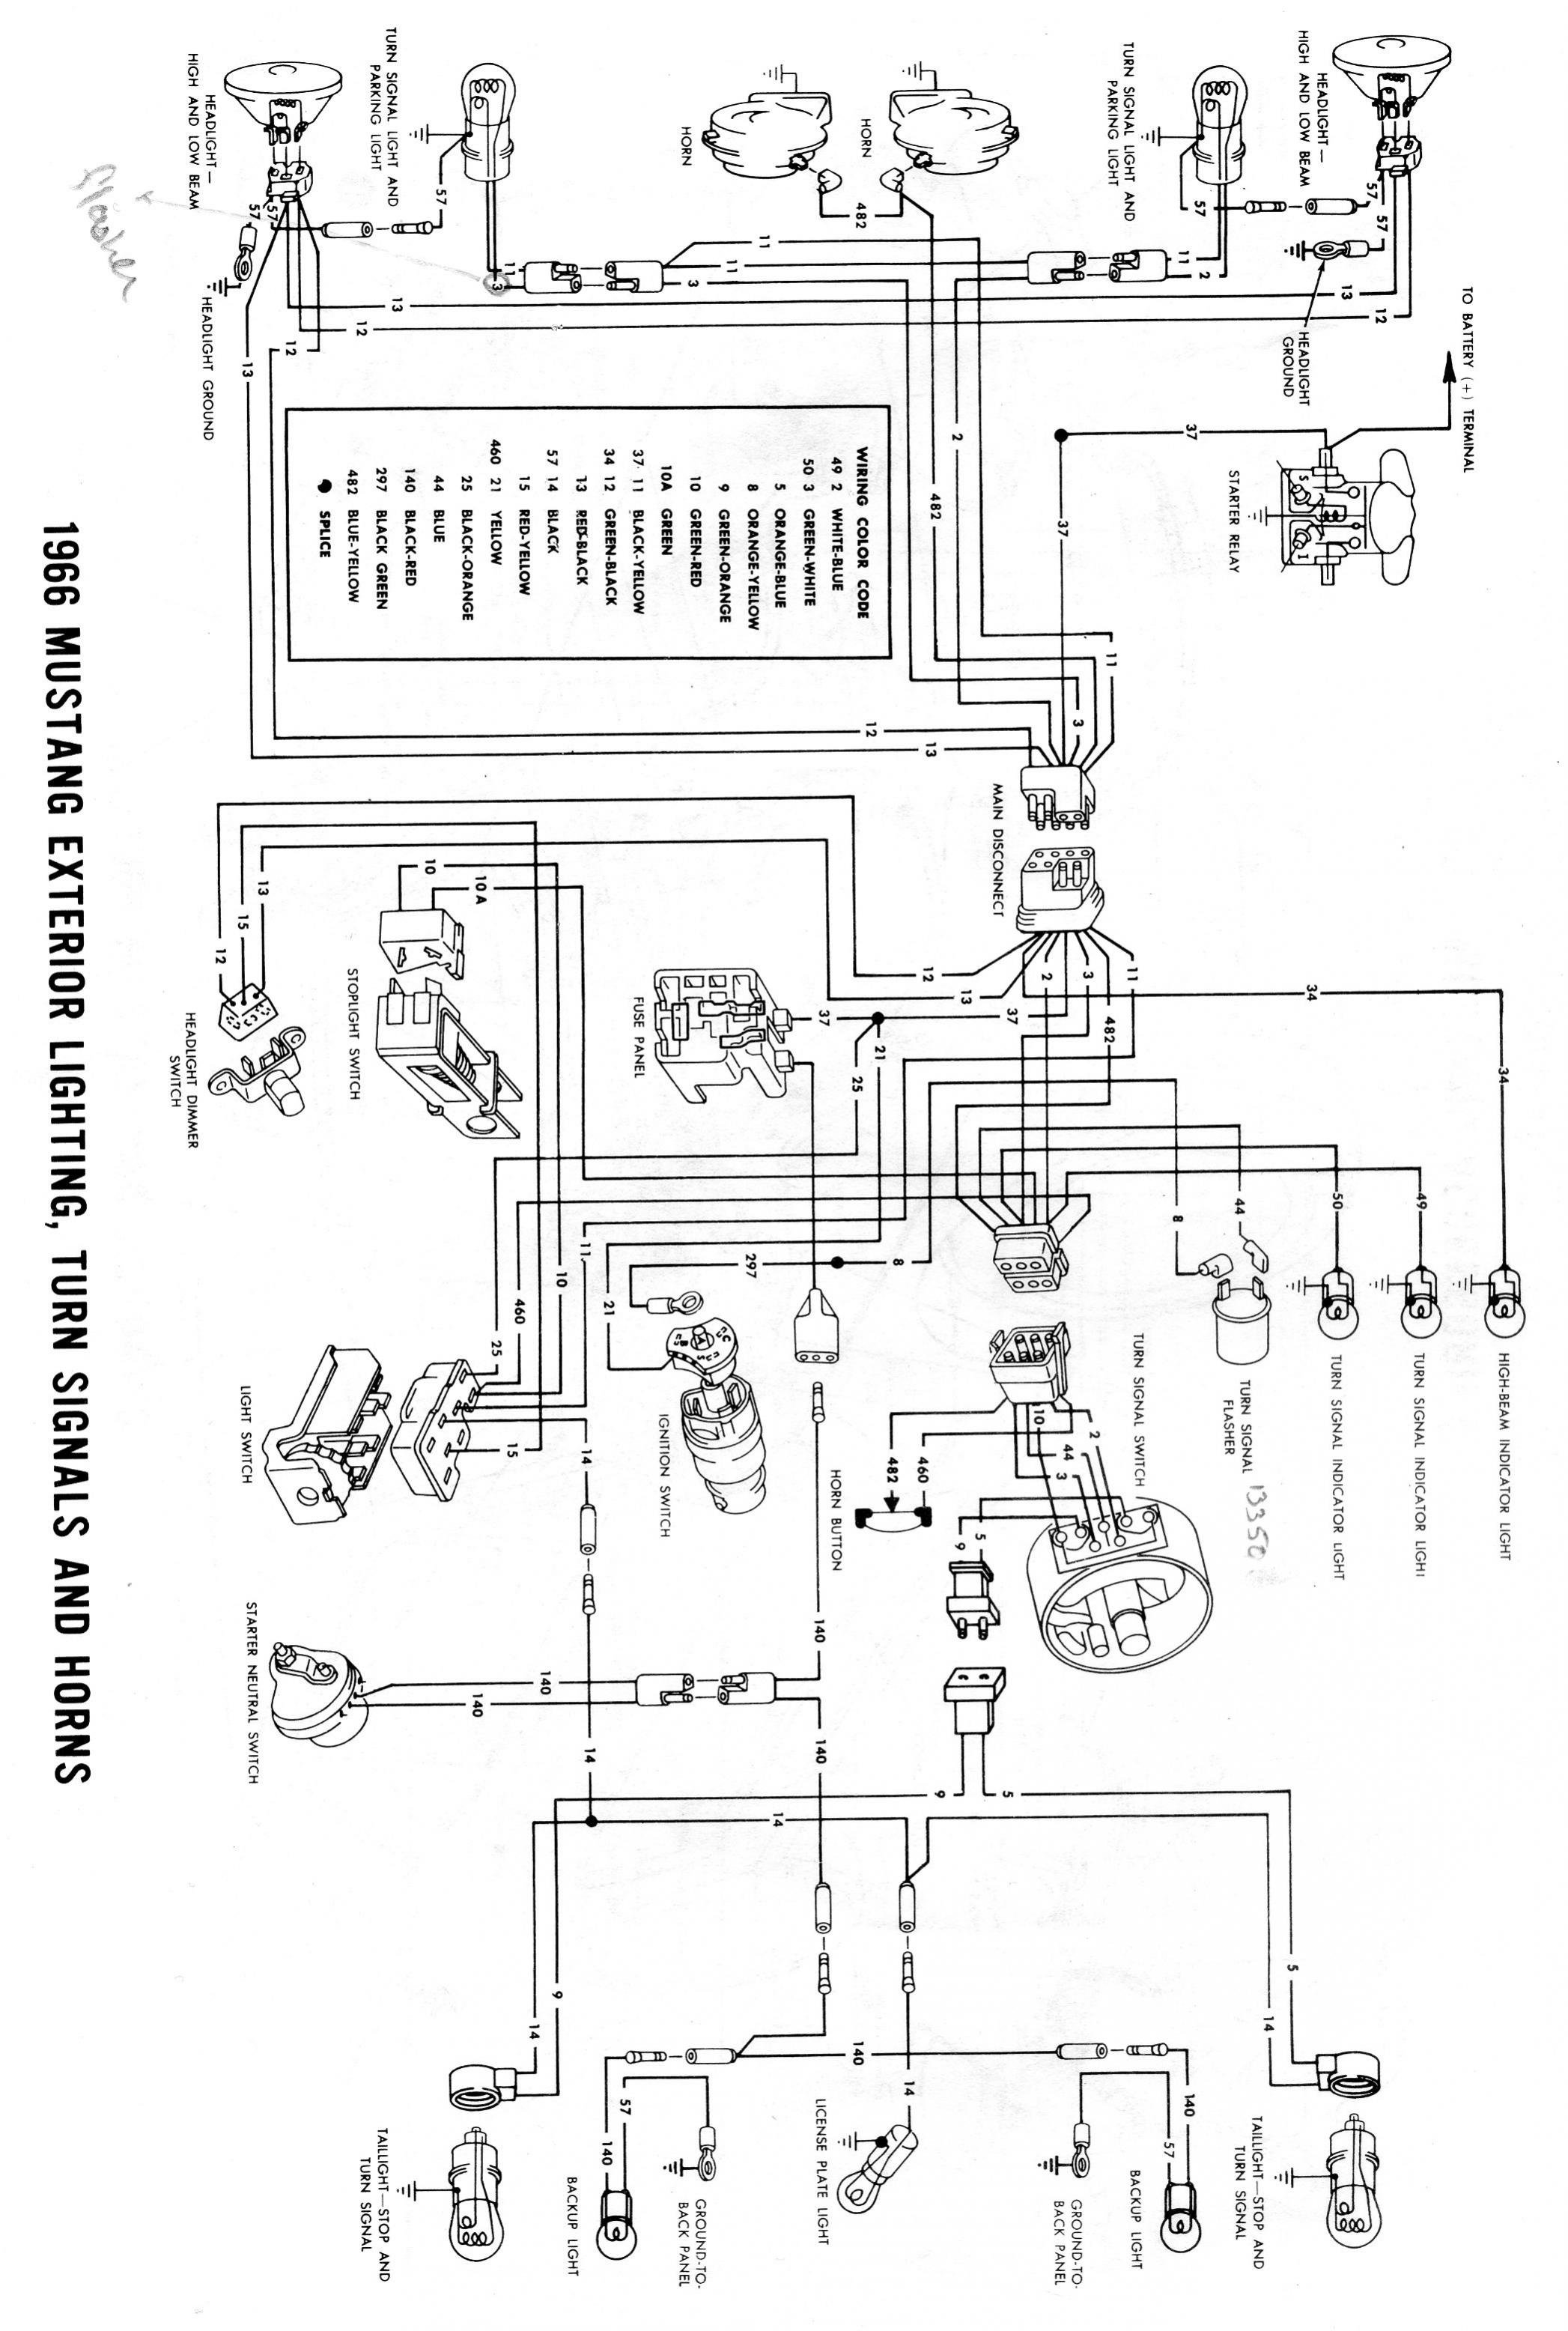 1966 ford f100 wire diagram